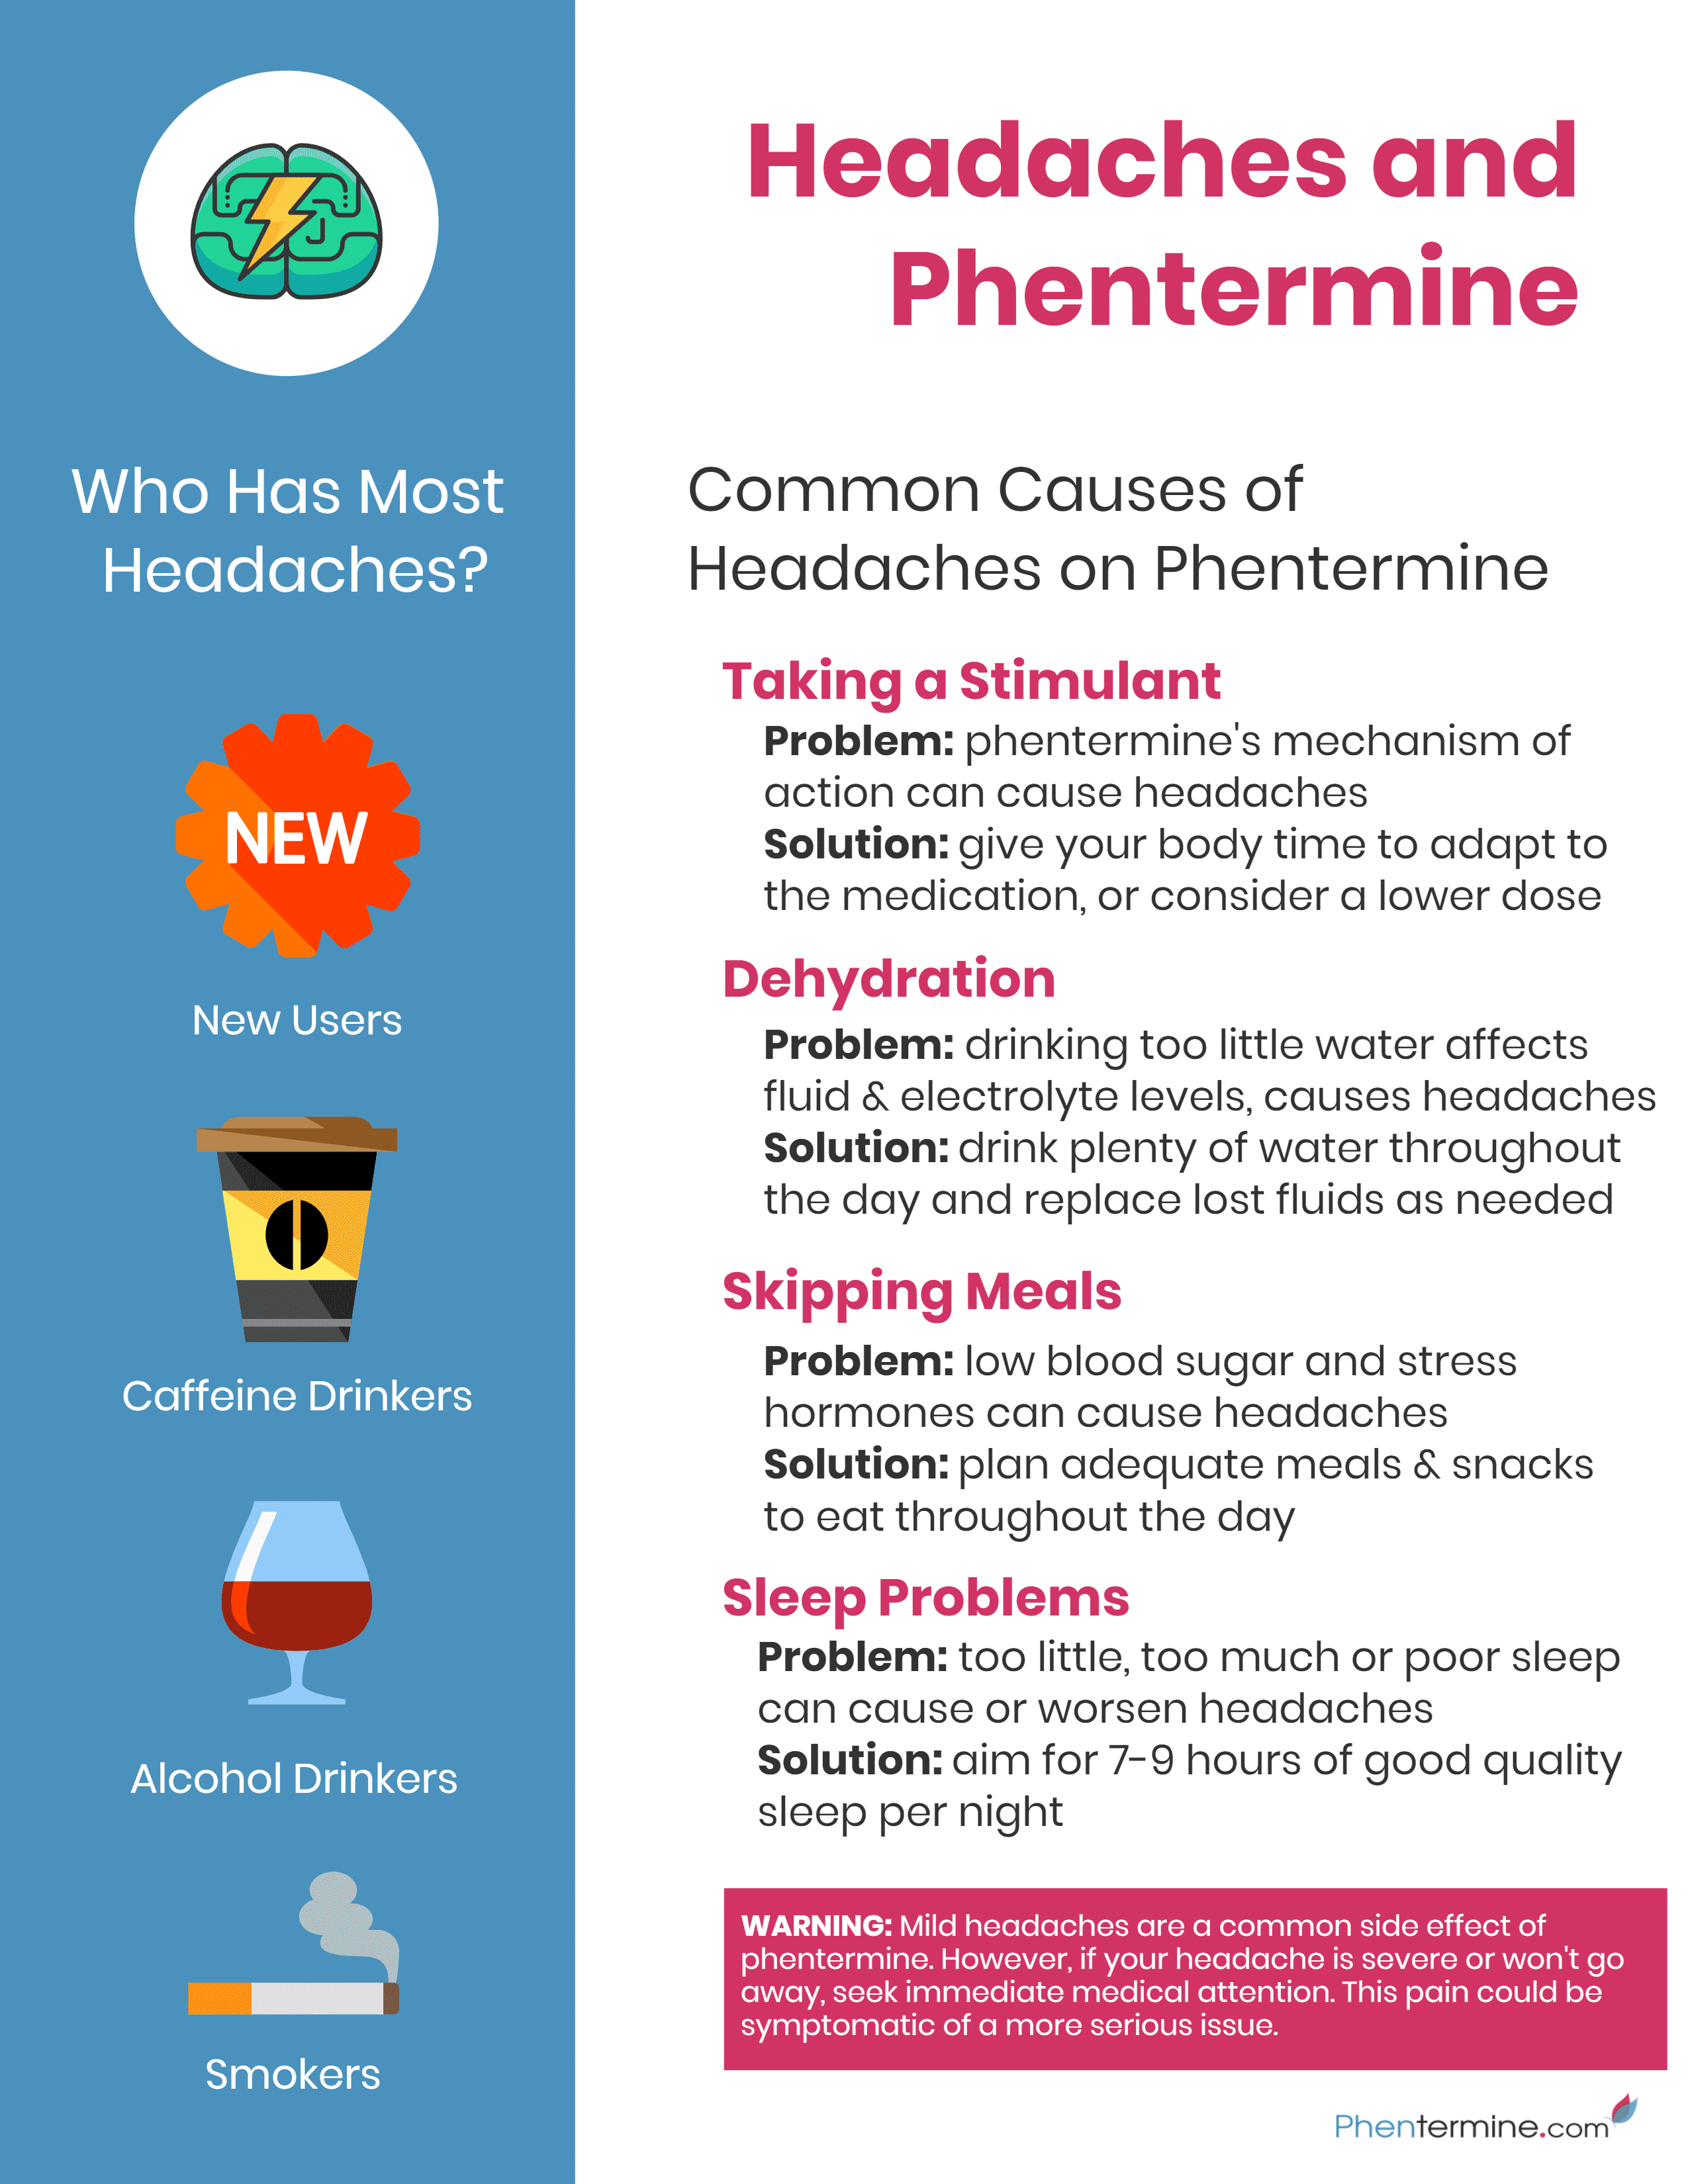 headaches and phentermine infographic